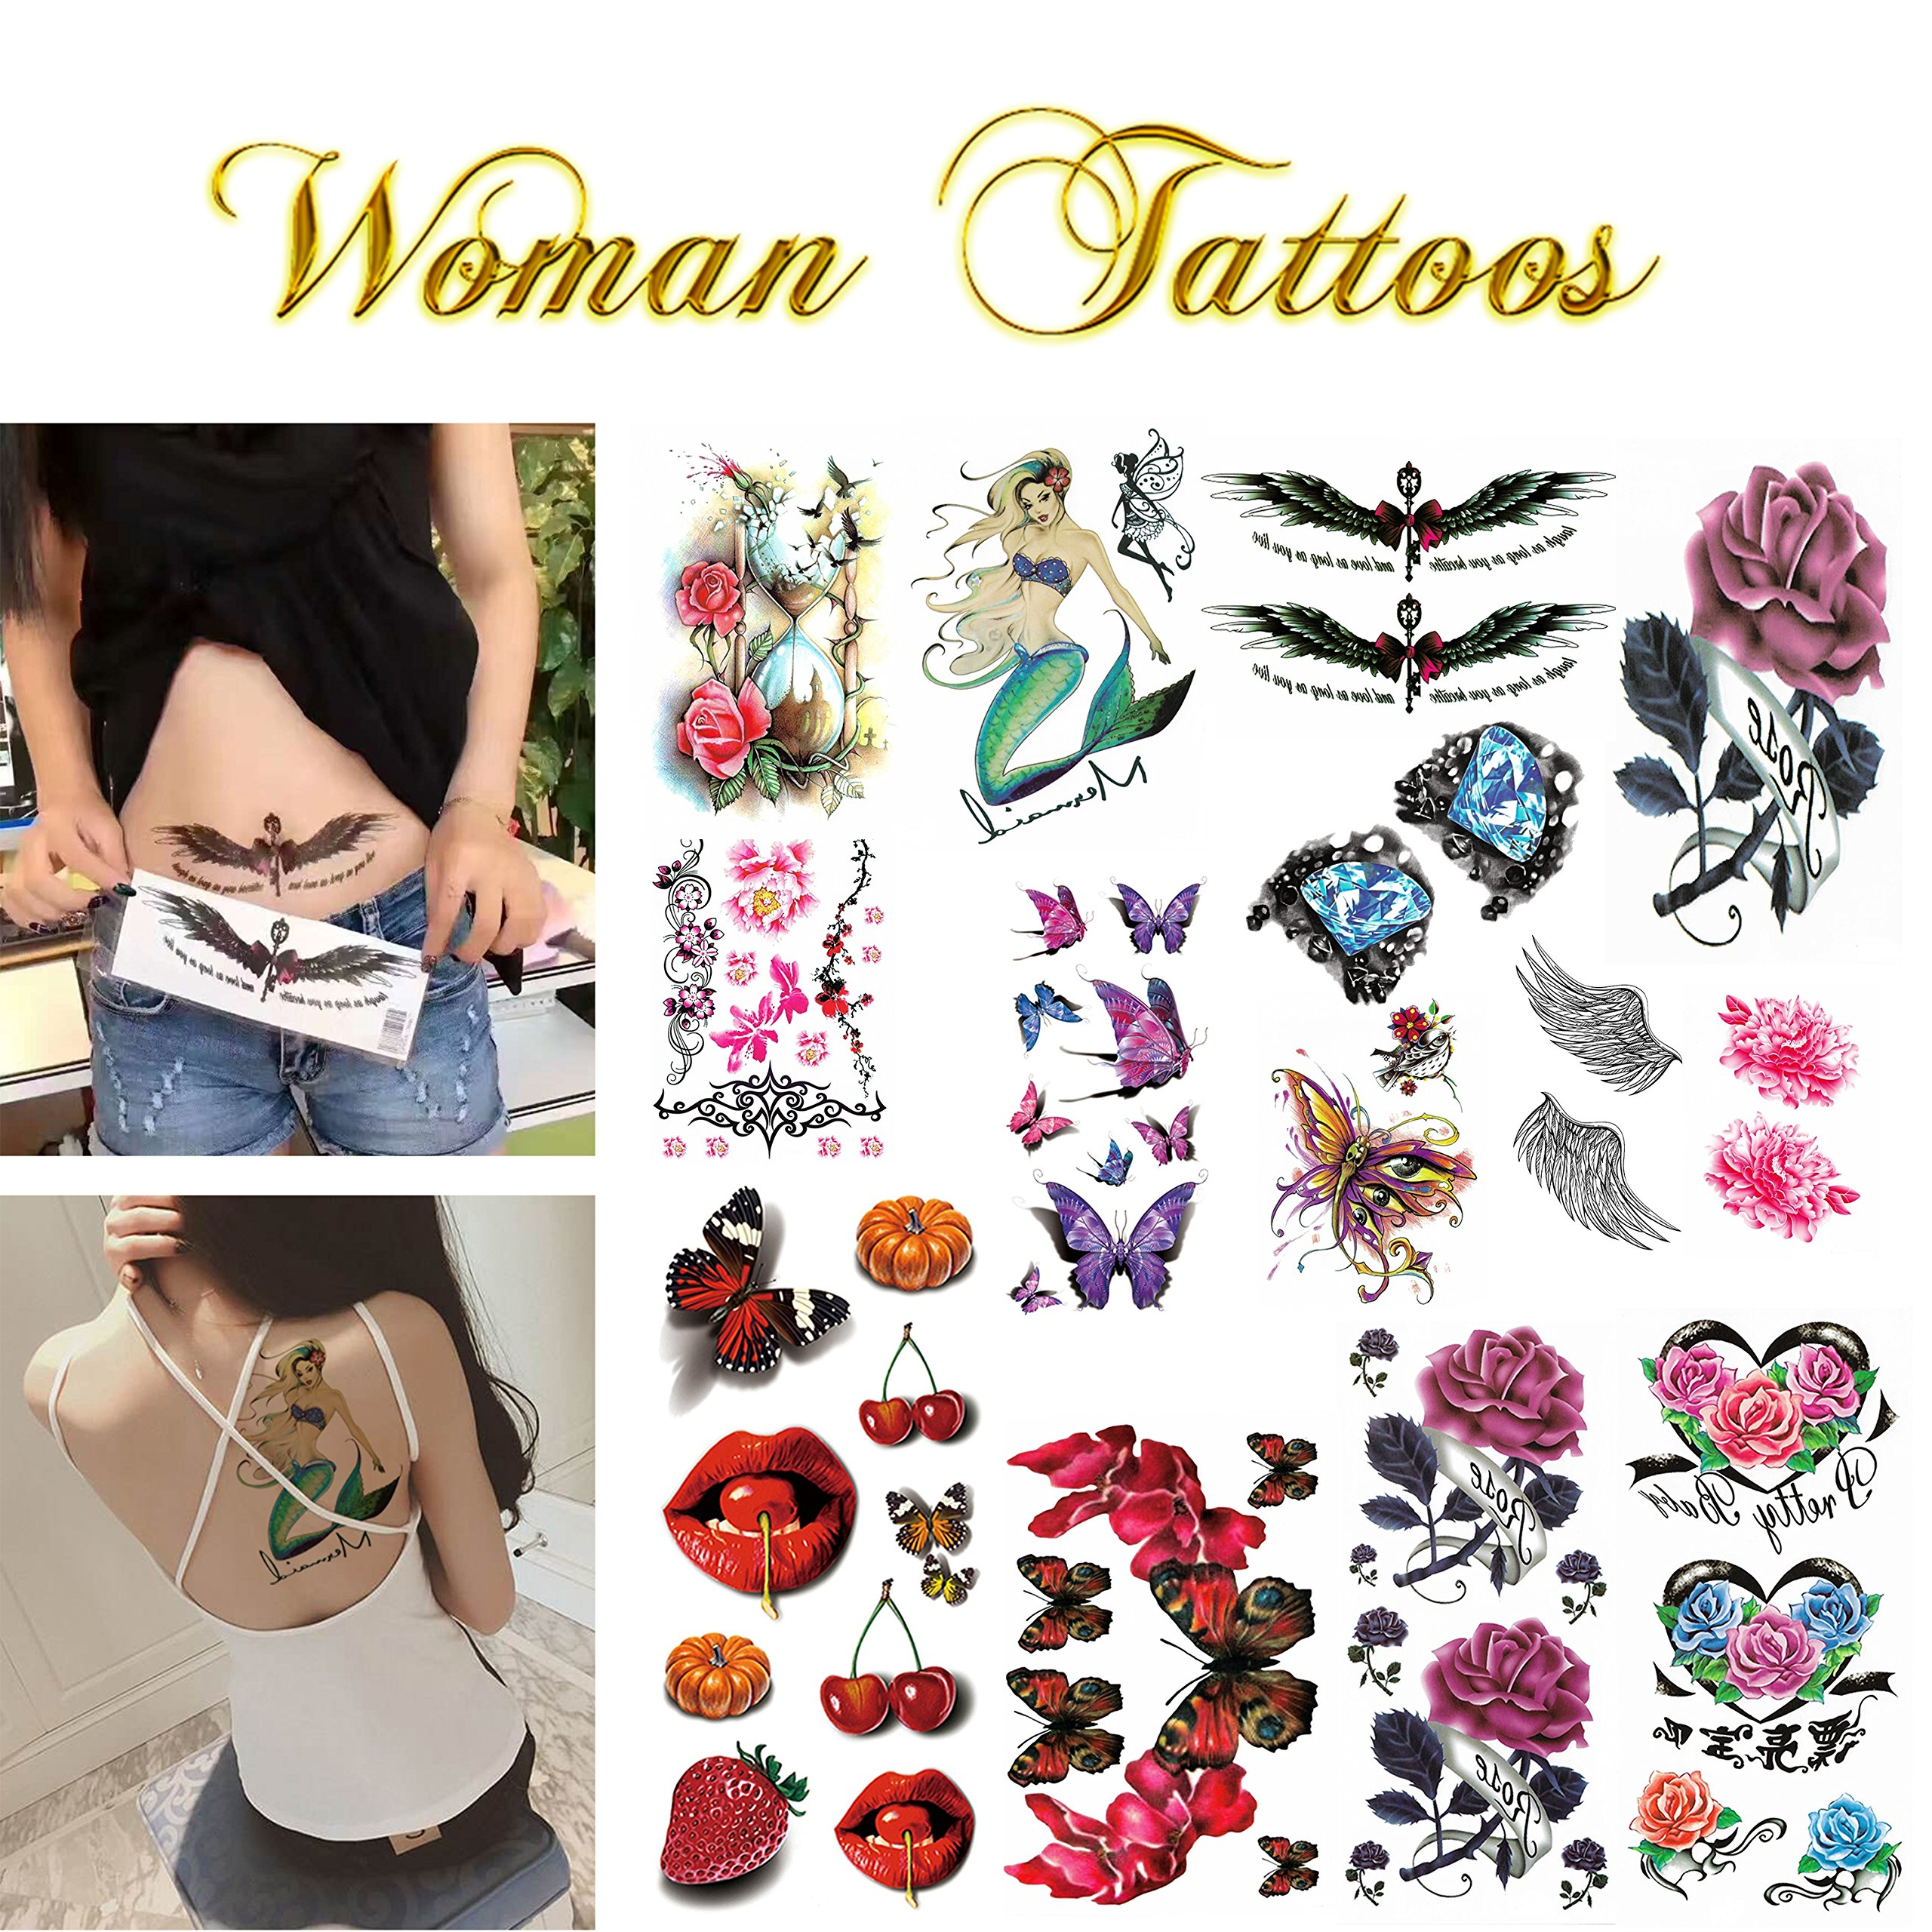 Realistic Ink Temporary Tattoos Kit- for Woman and Girls- 16 Colorful Sheets by Companion Company